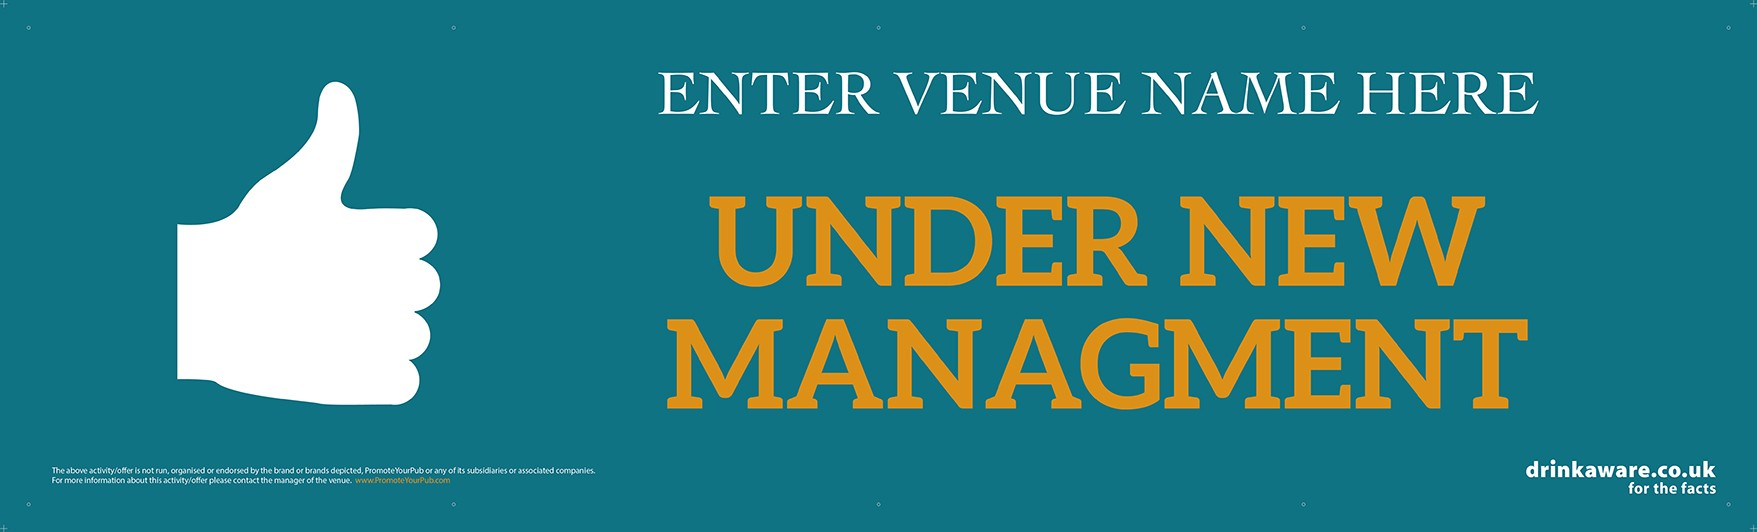 Under New Management Banner (Lrg)